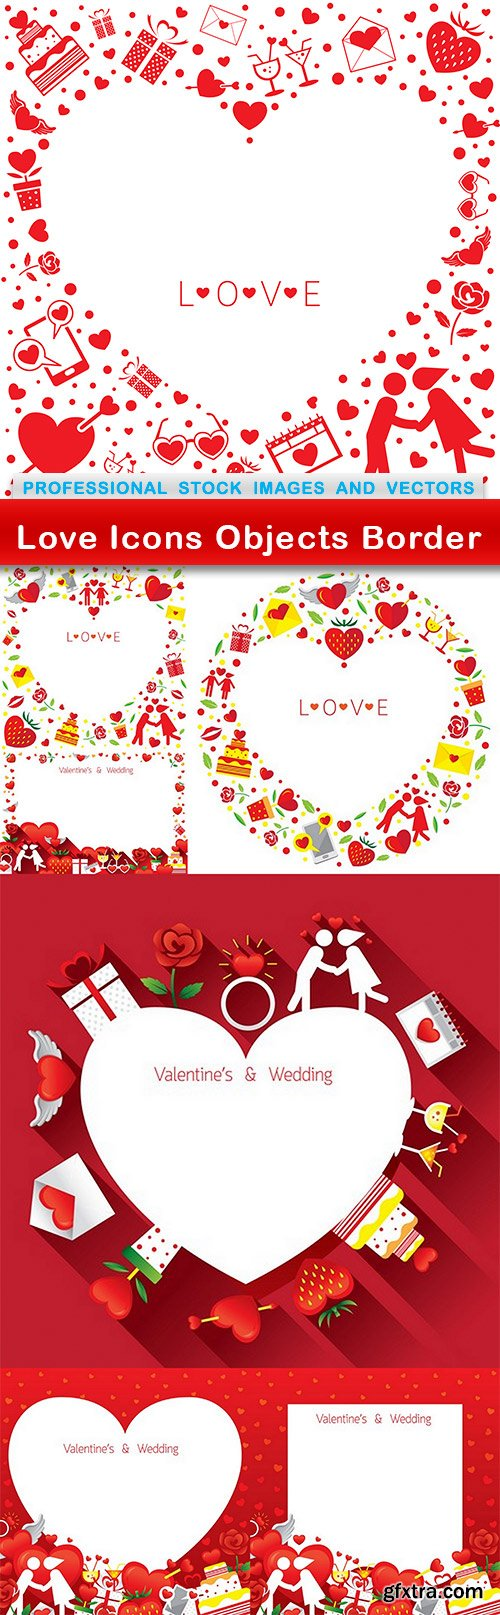 Love Icons Objects Border - 7 EPS